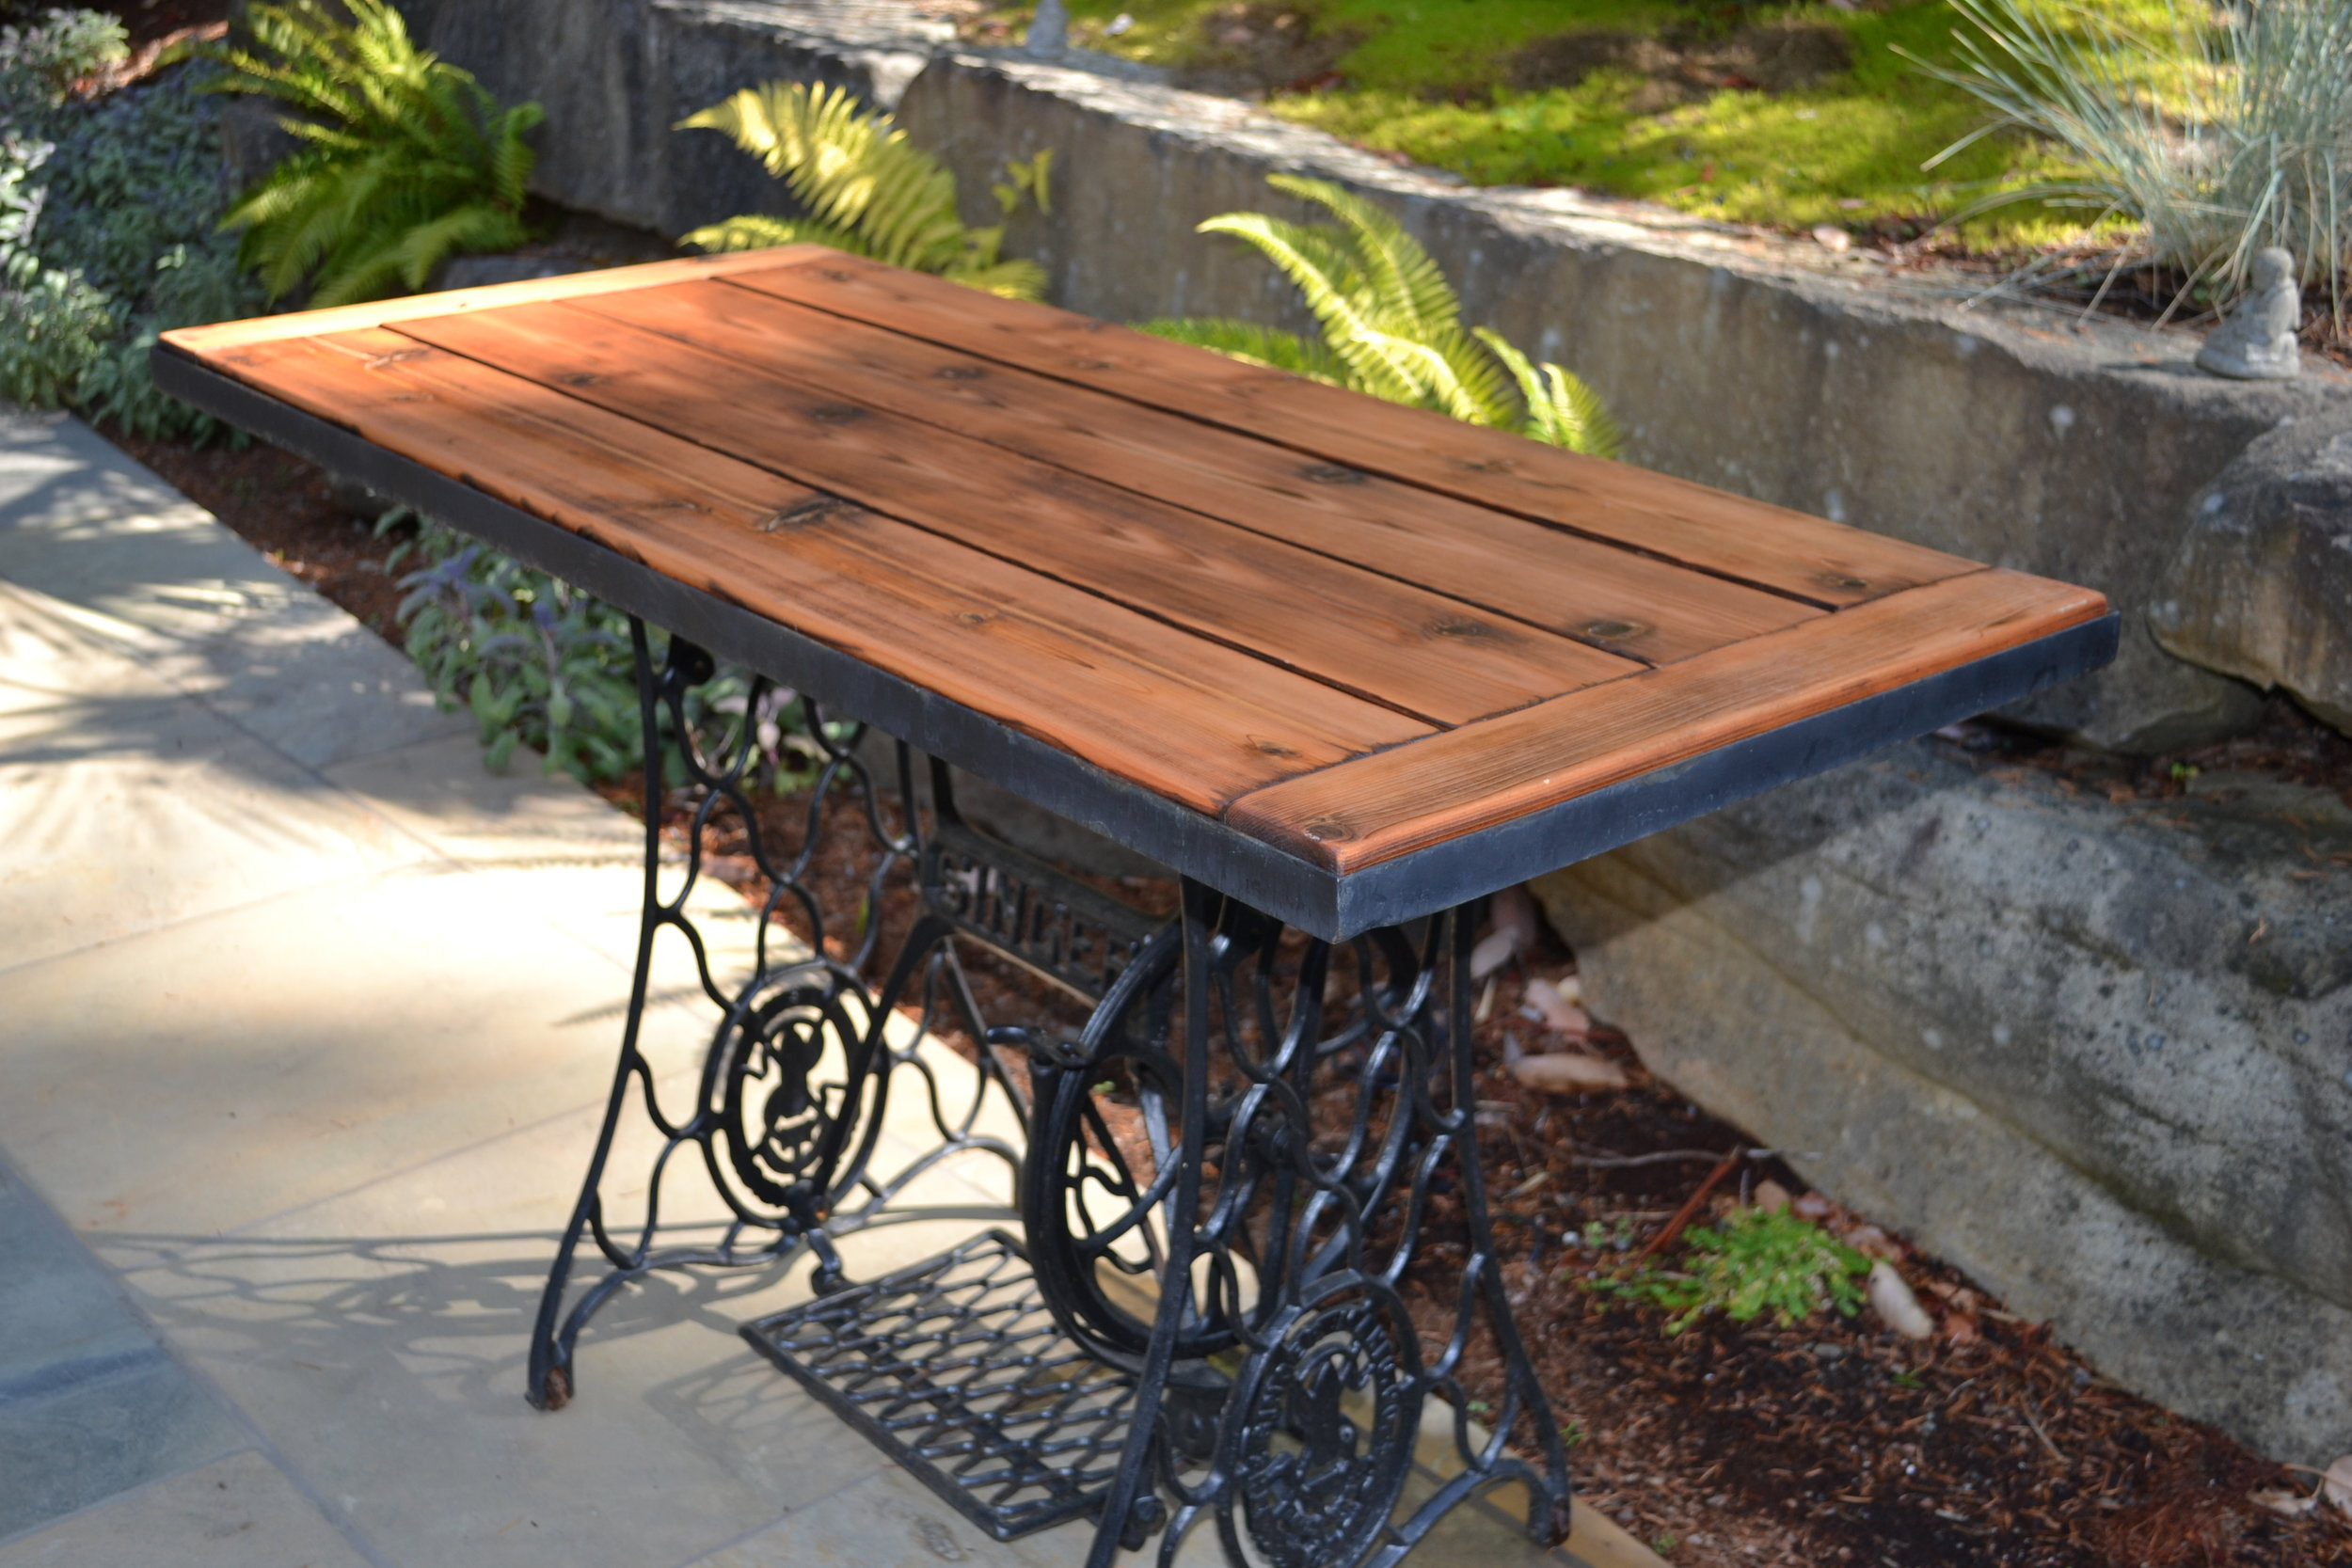 Cedar outdoor table on antique cast iron sewing machine base. Ancient Japanese Shou Sugi Ban torched finish. Sold.